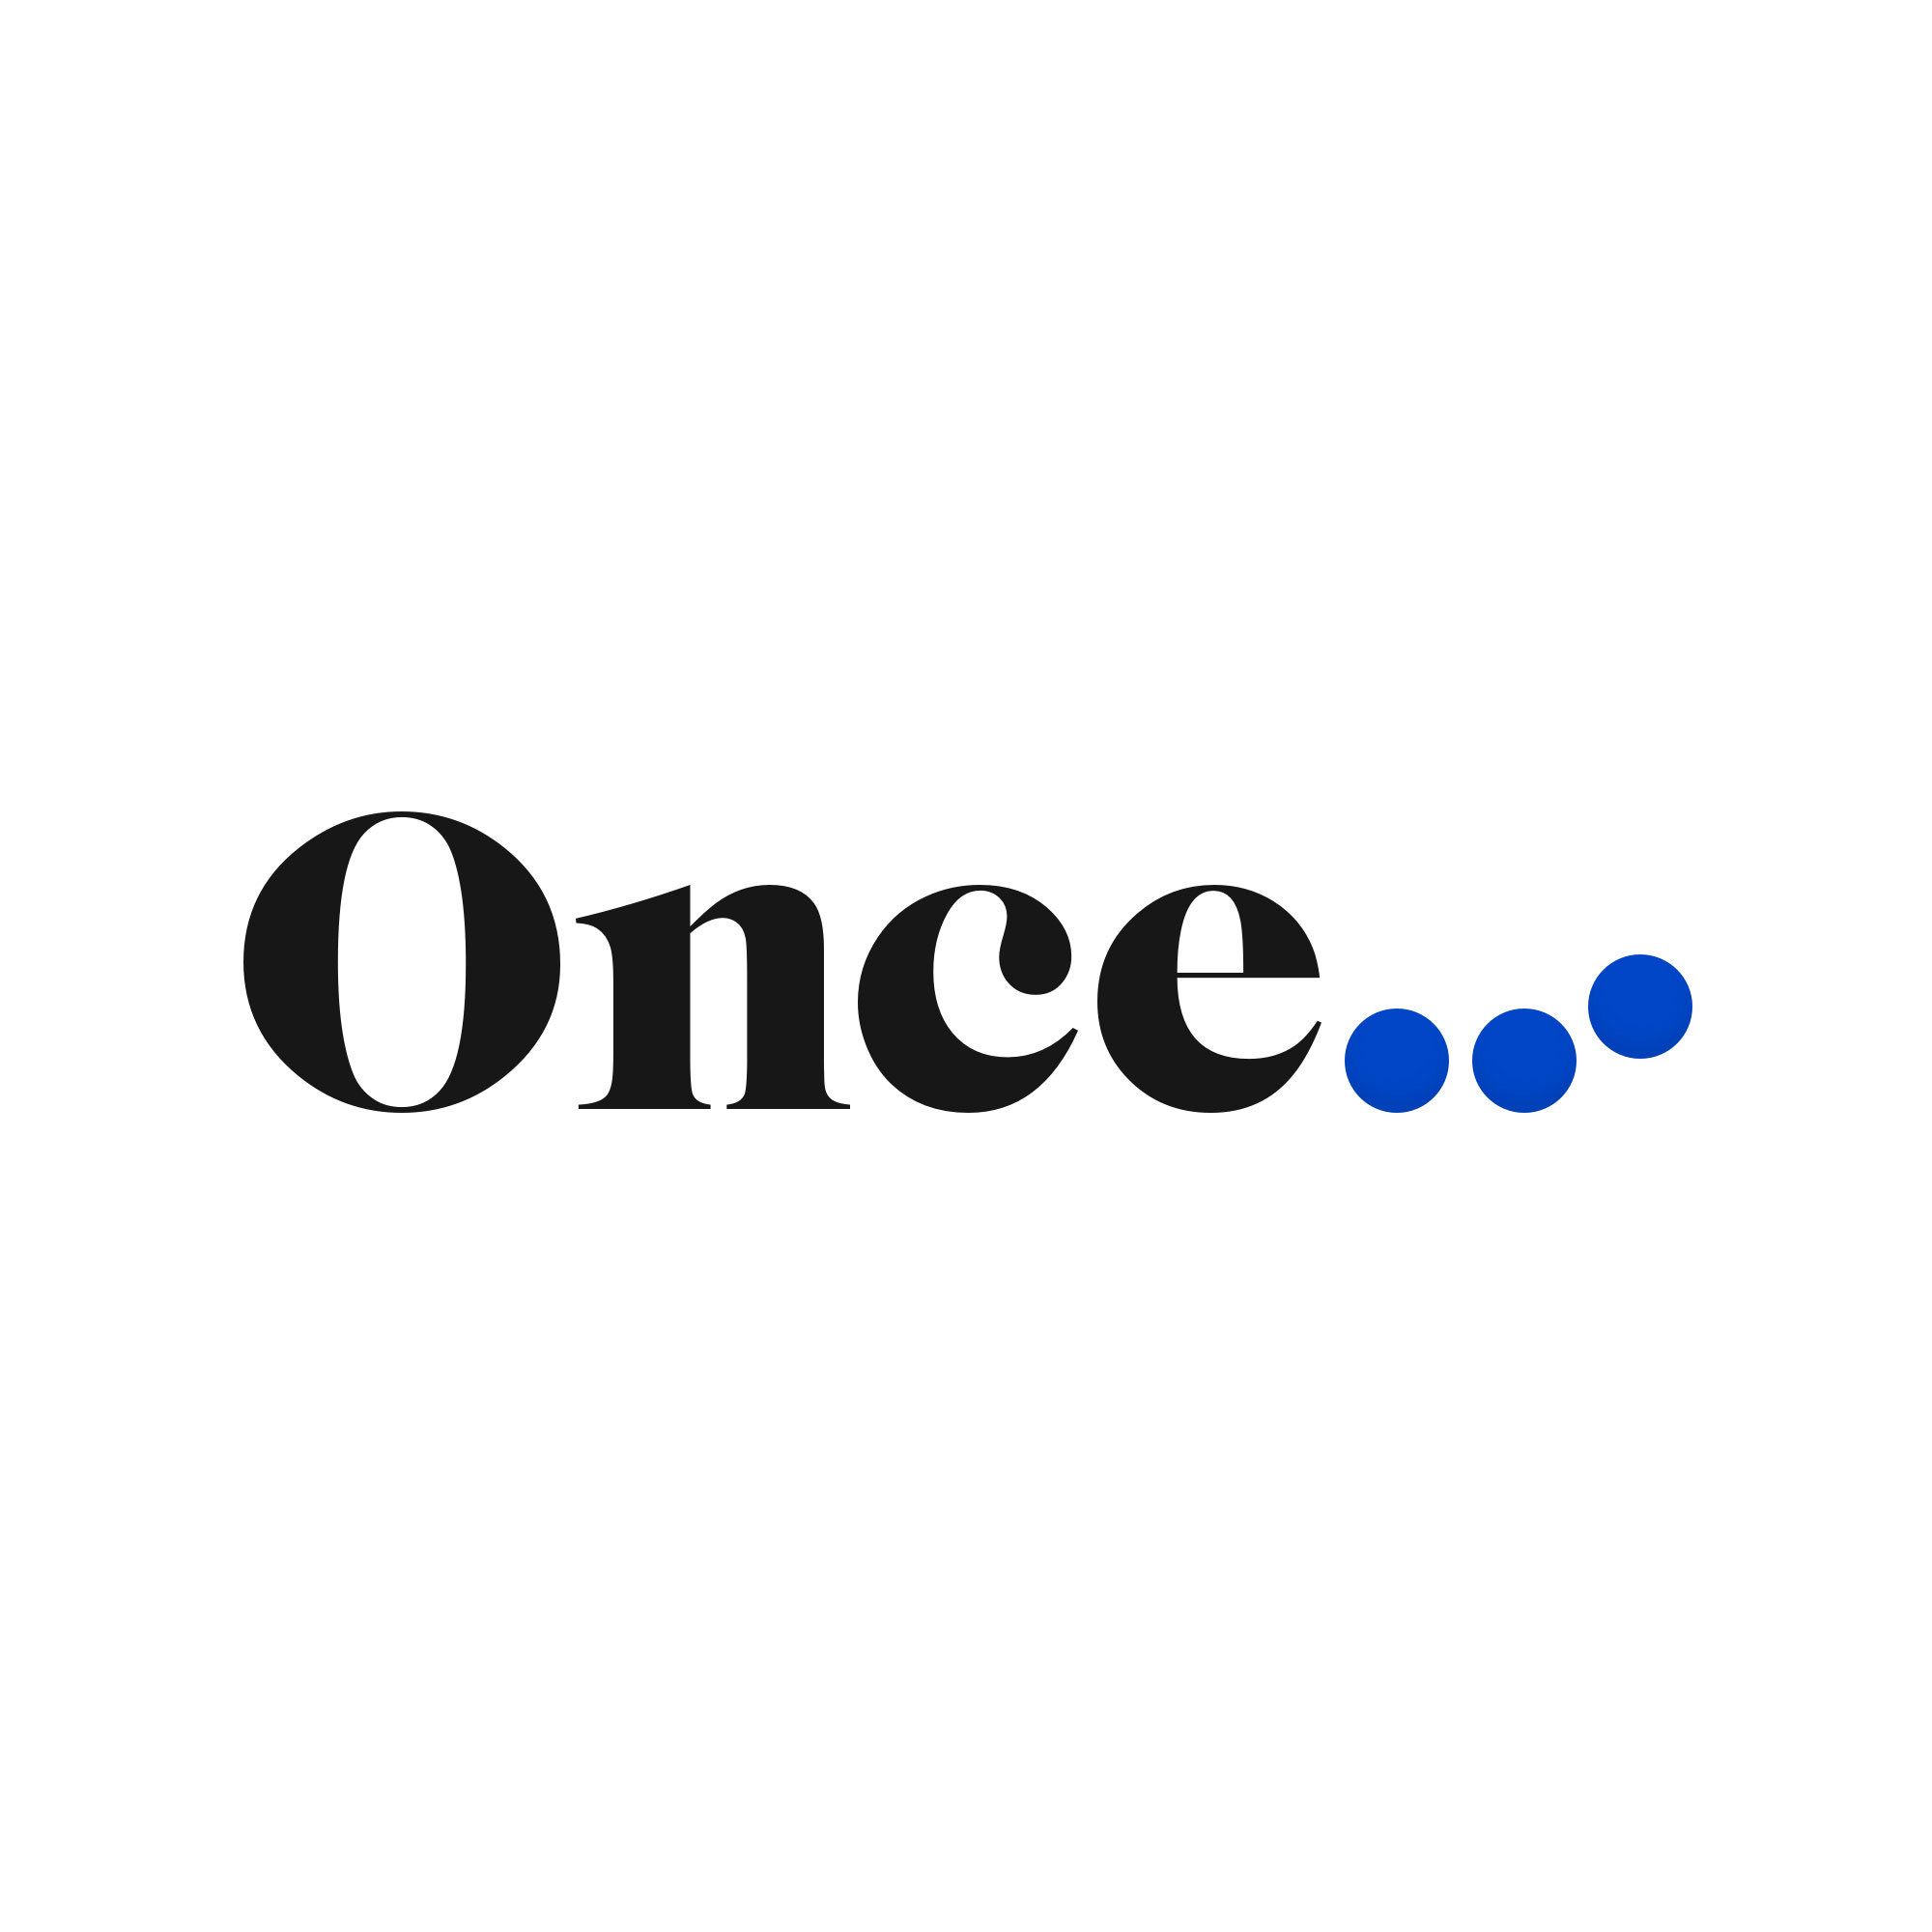 Logo of Once